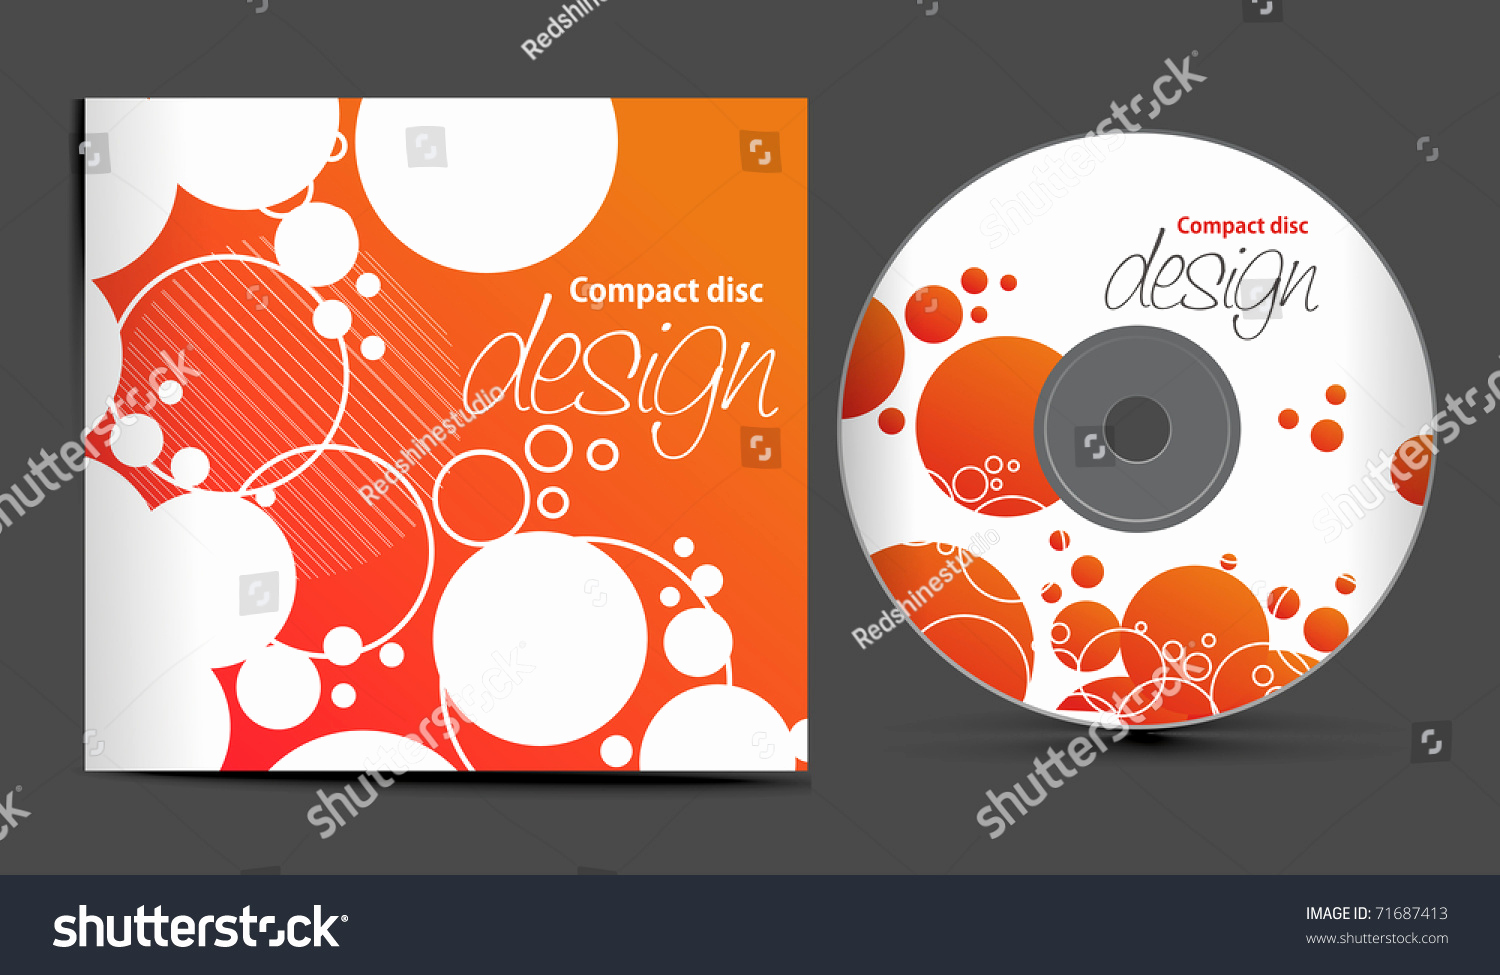 Cd Cover Design Template New Vector Cd Cover Design Template with Copy Space Vector